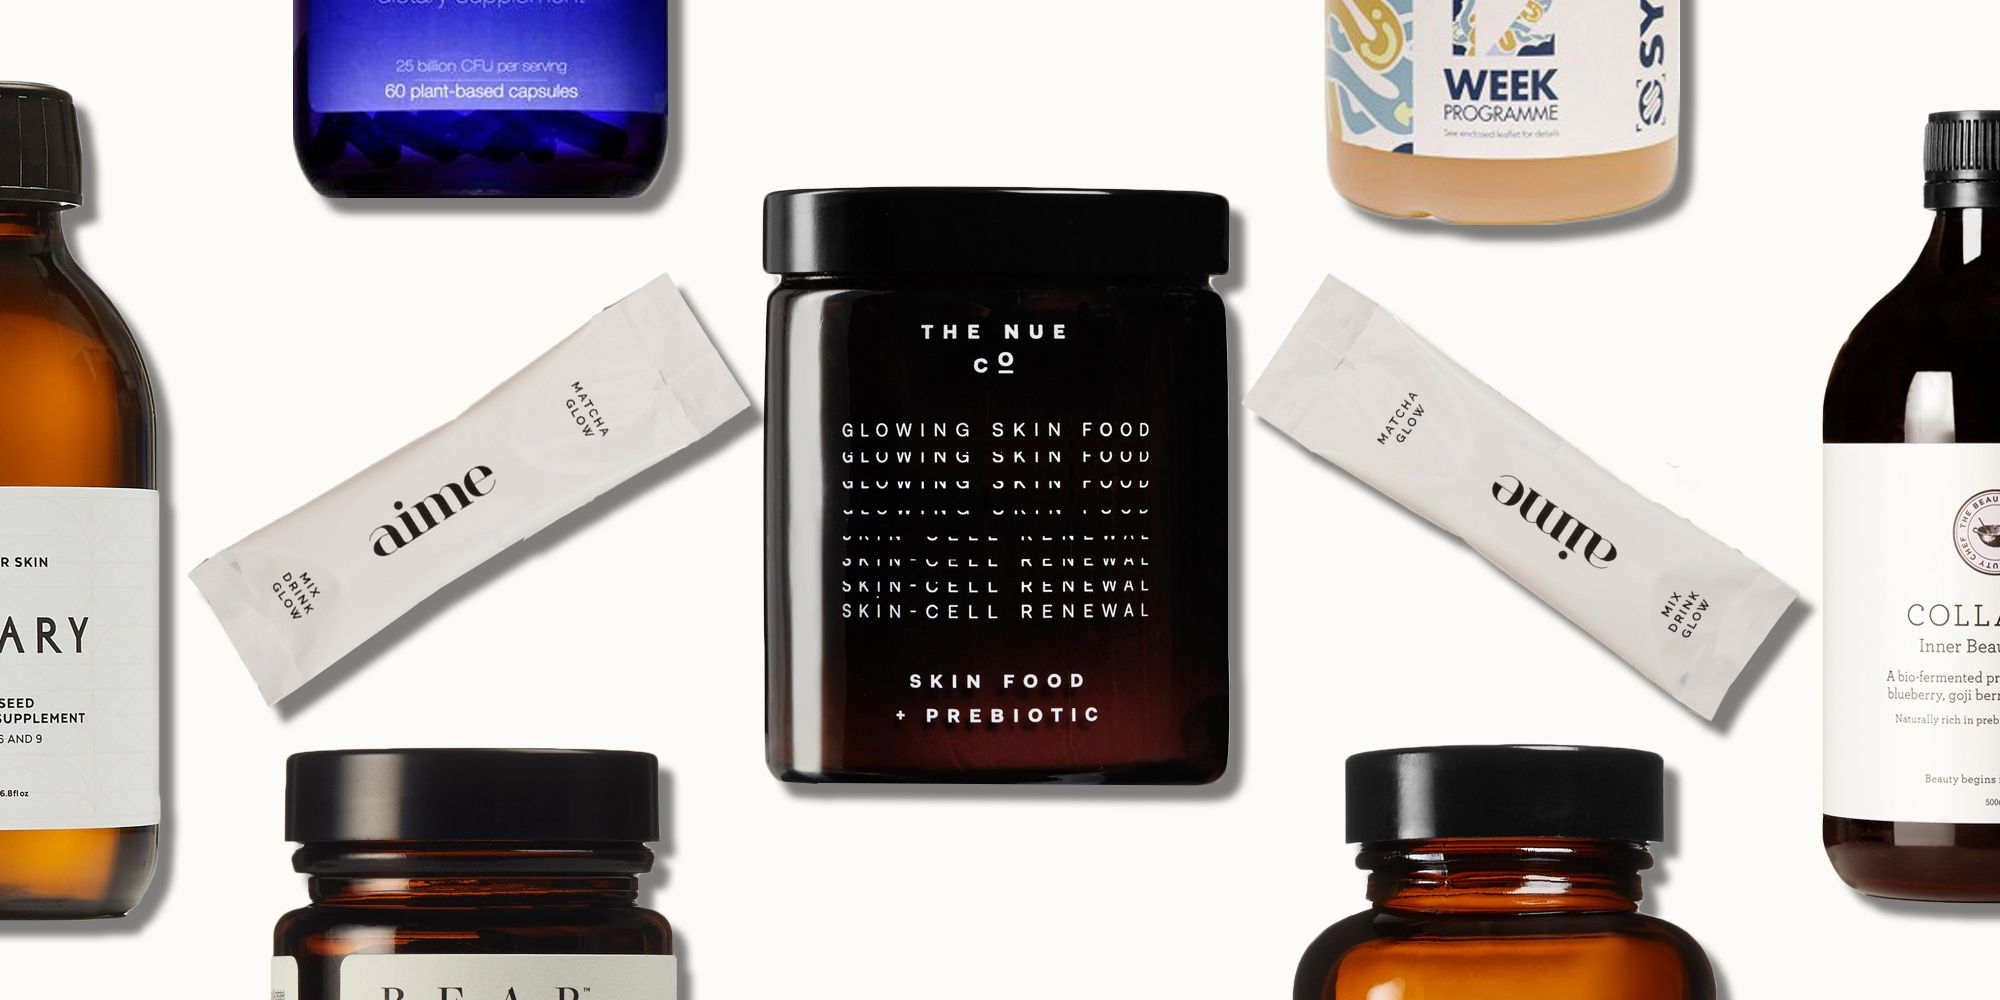 19 Best Beauty Supplements - Top Hair, Skin, and Collagen